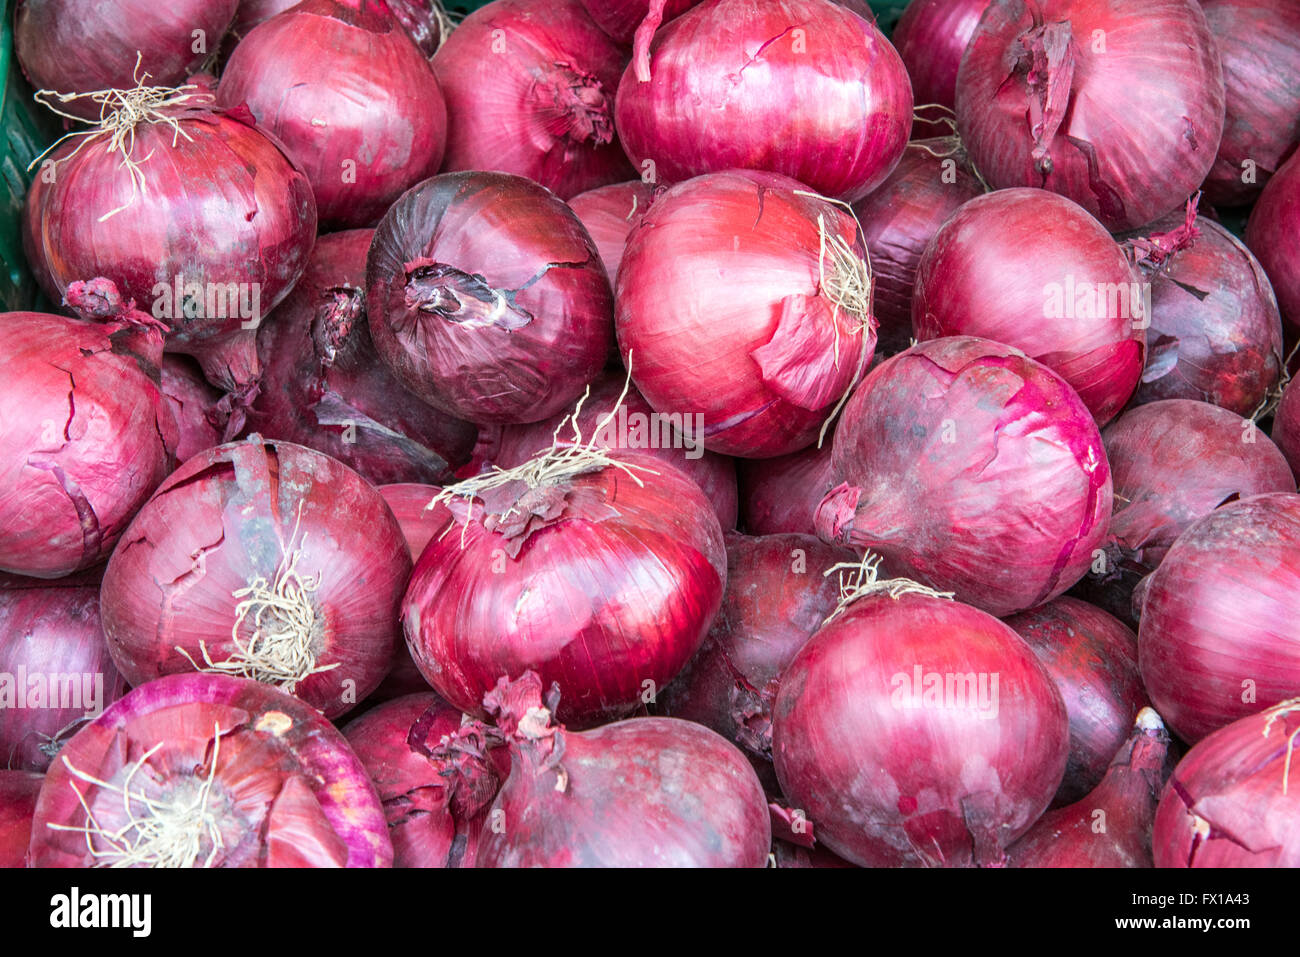 Background of red spanish onions seen at a market Stock Photo